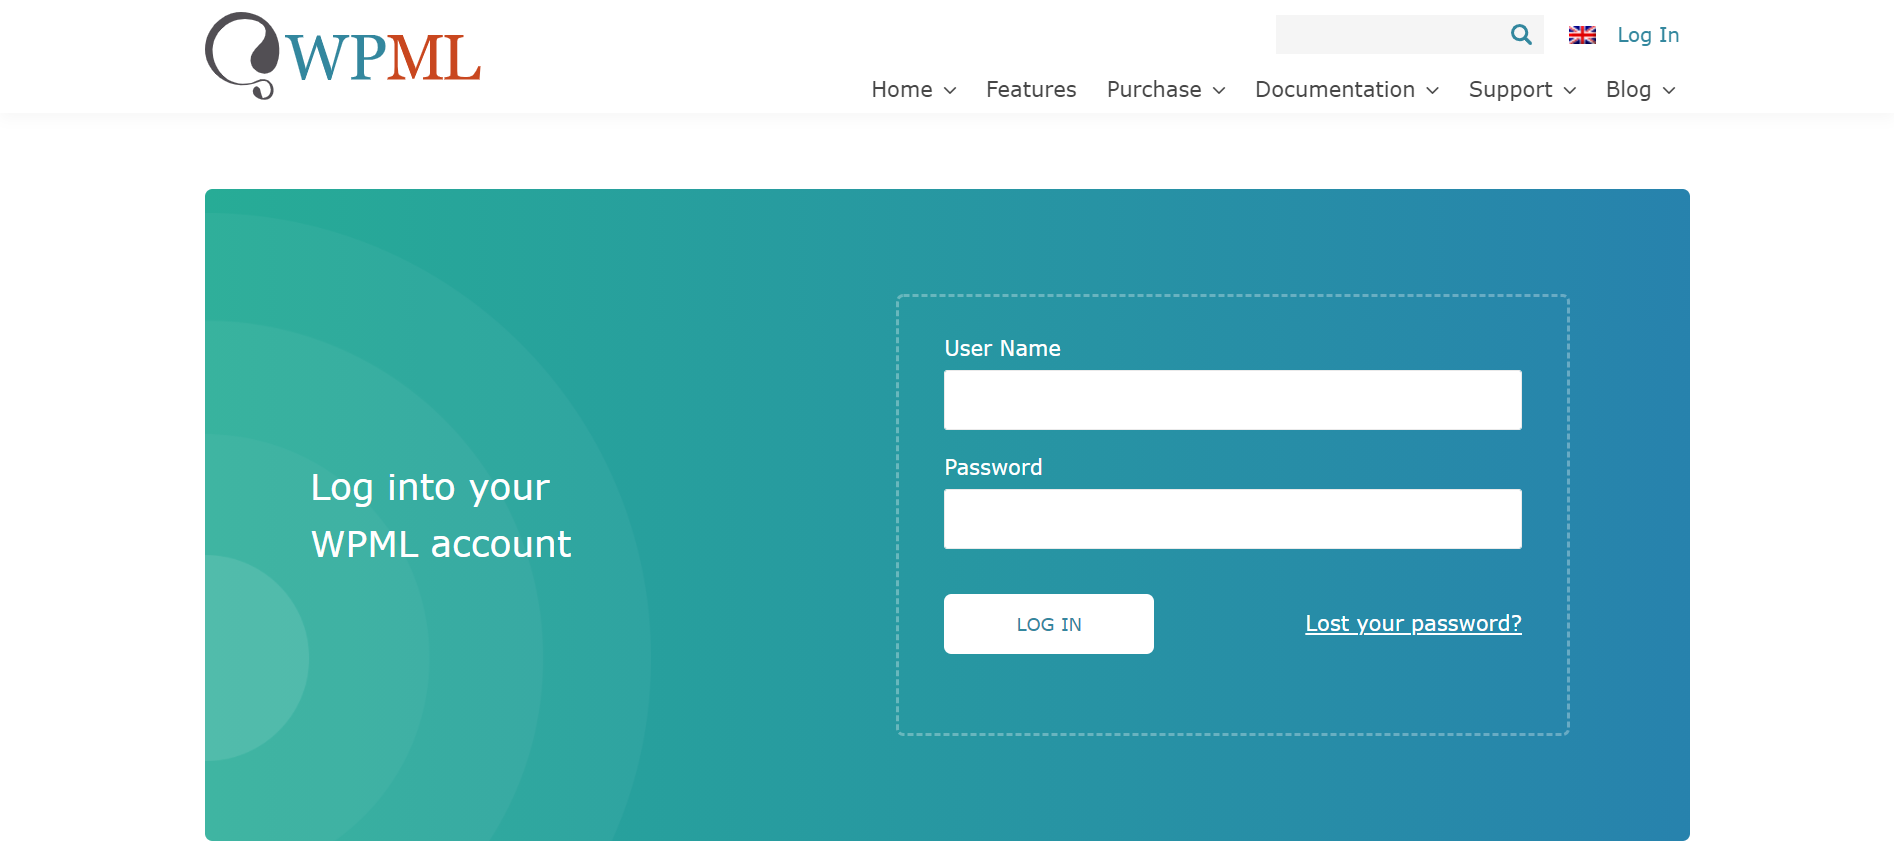 Login-to-your-account-WPML